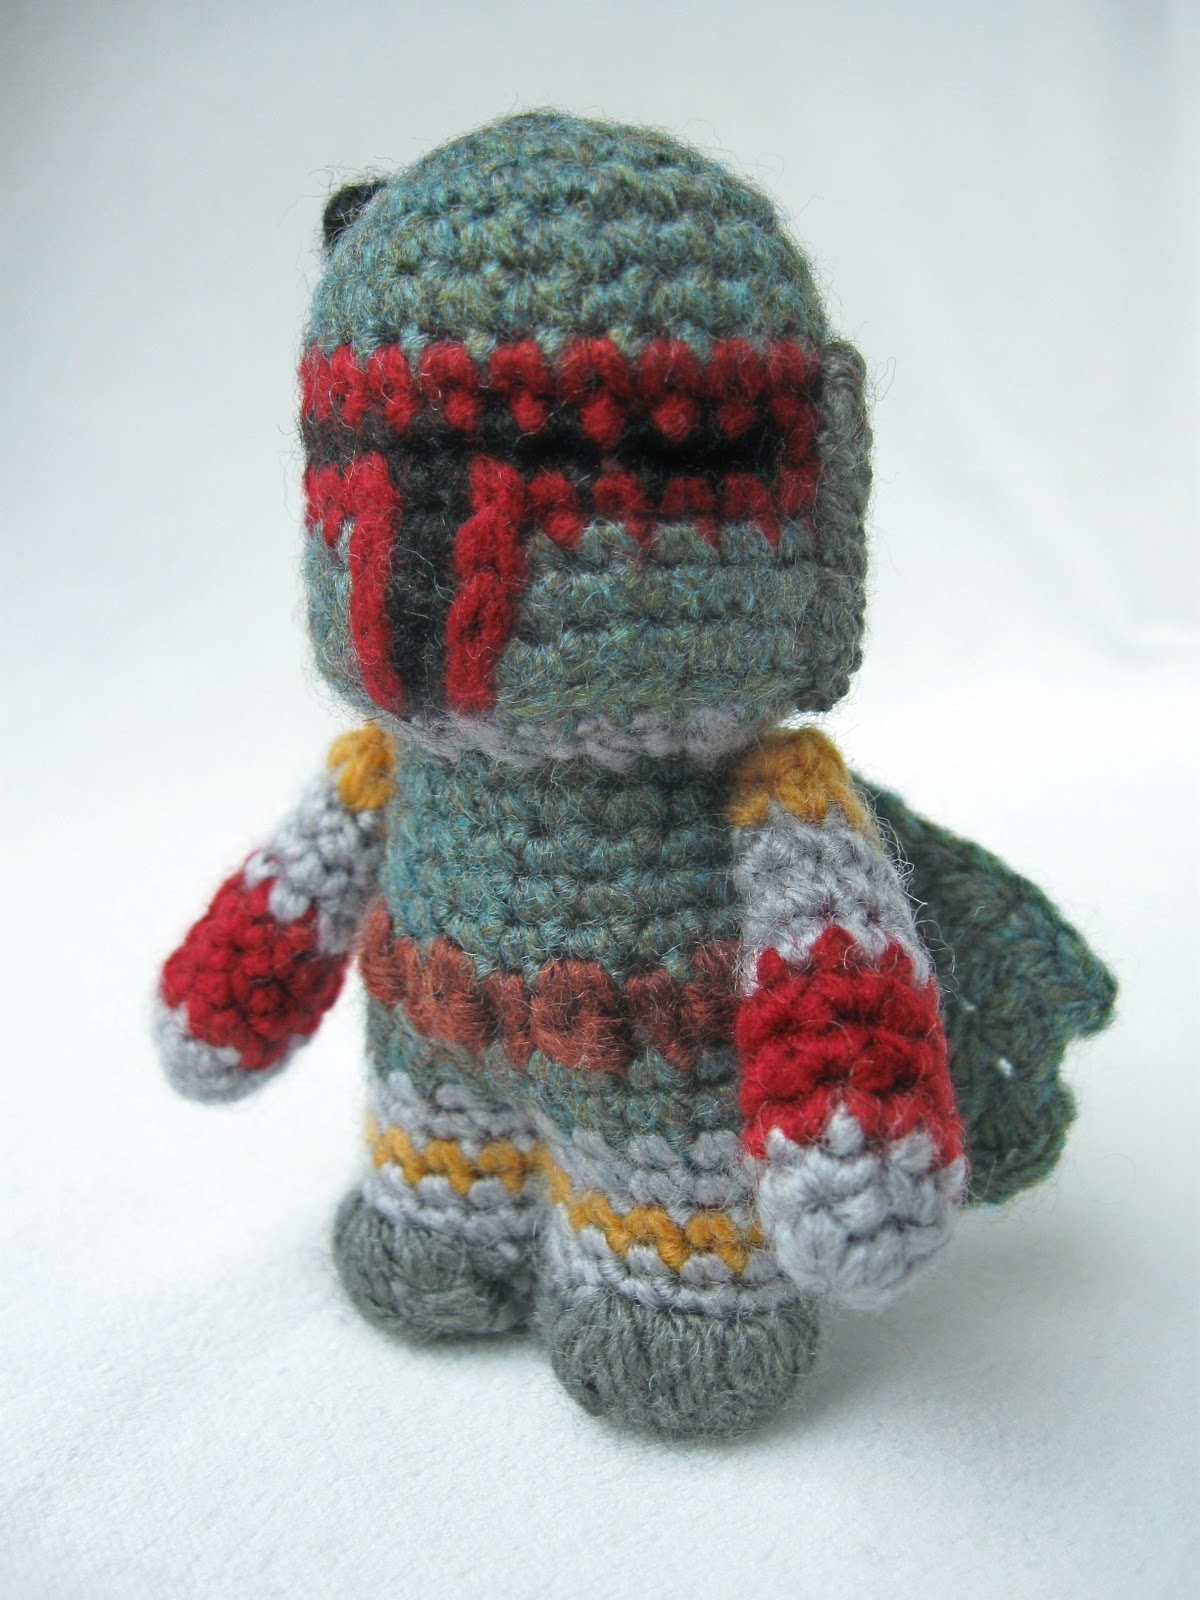 Crochet Patterns Star Wars : LucyRavenscar - Crochet Creatures: Boba Fett - Mini Amigurumi